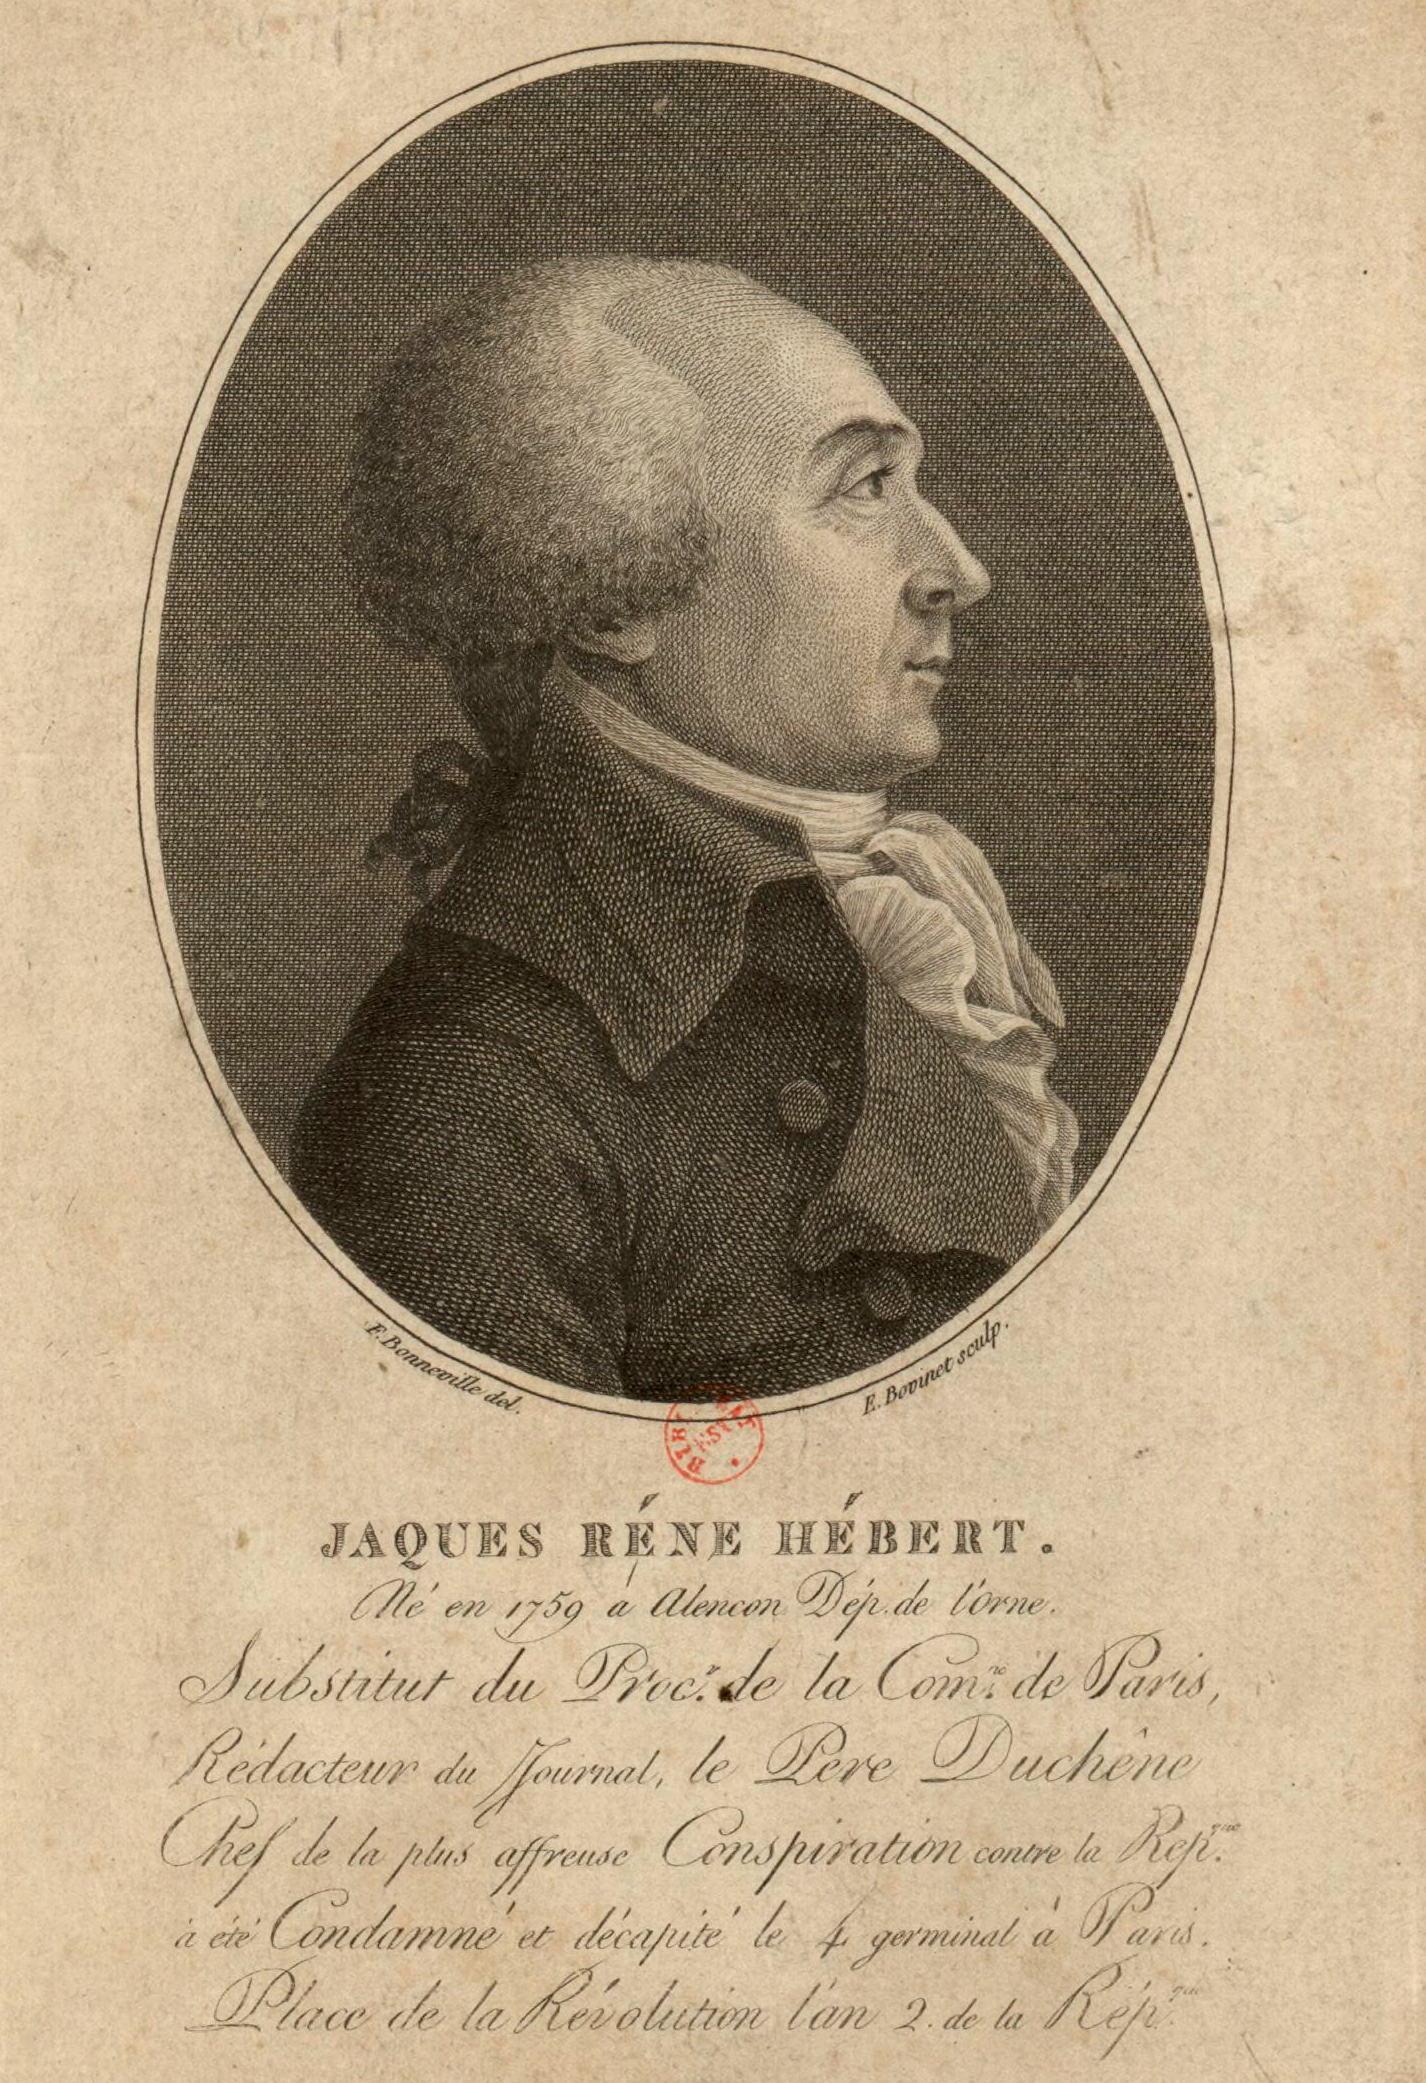 https://upload.wikimedia.org/wikipedia/commons/a/a1/Jacques_Ren%C3%A9_H%C3%A9bert.JPG